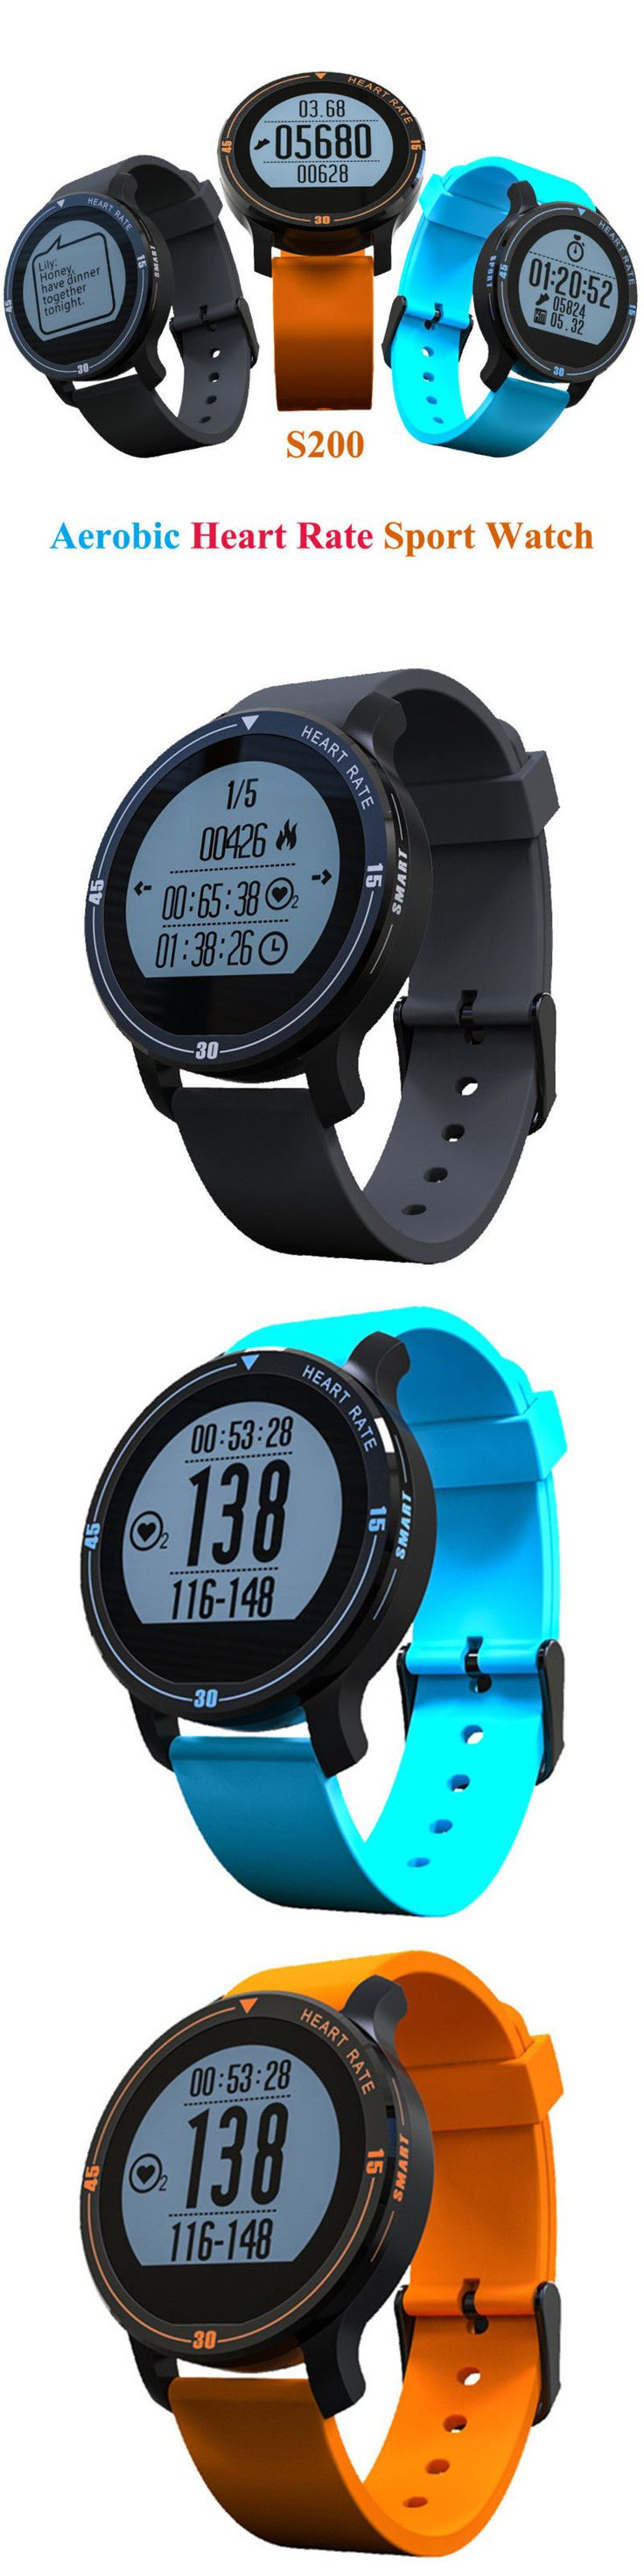 Heart Rate Monitors 177841: New S200 Outdoor Exercise Smart Watch Support Heart Rate Monitor Fitness Tracker -> BUY IT NOW ONLY: $35.63 on eBay!